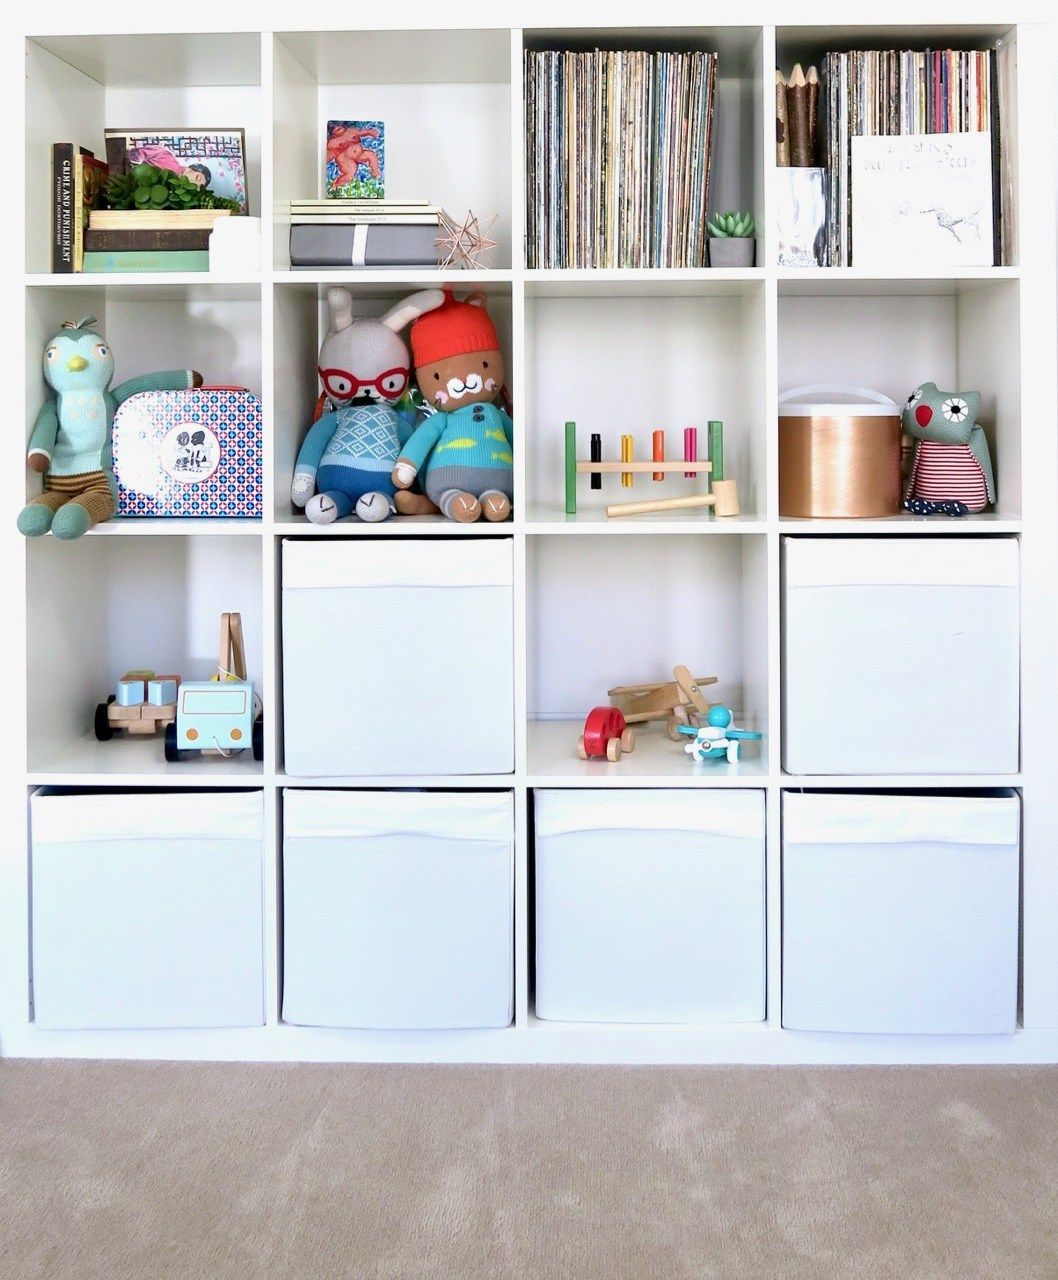 10 Diy Toy Storage Ideas For Any Space Diy Toy Storage Toy Storage Toy Organization Diy